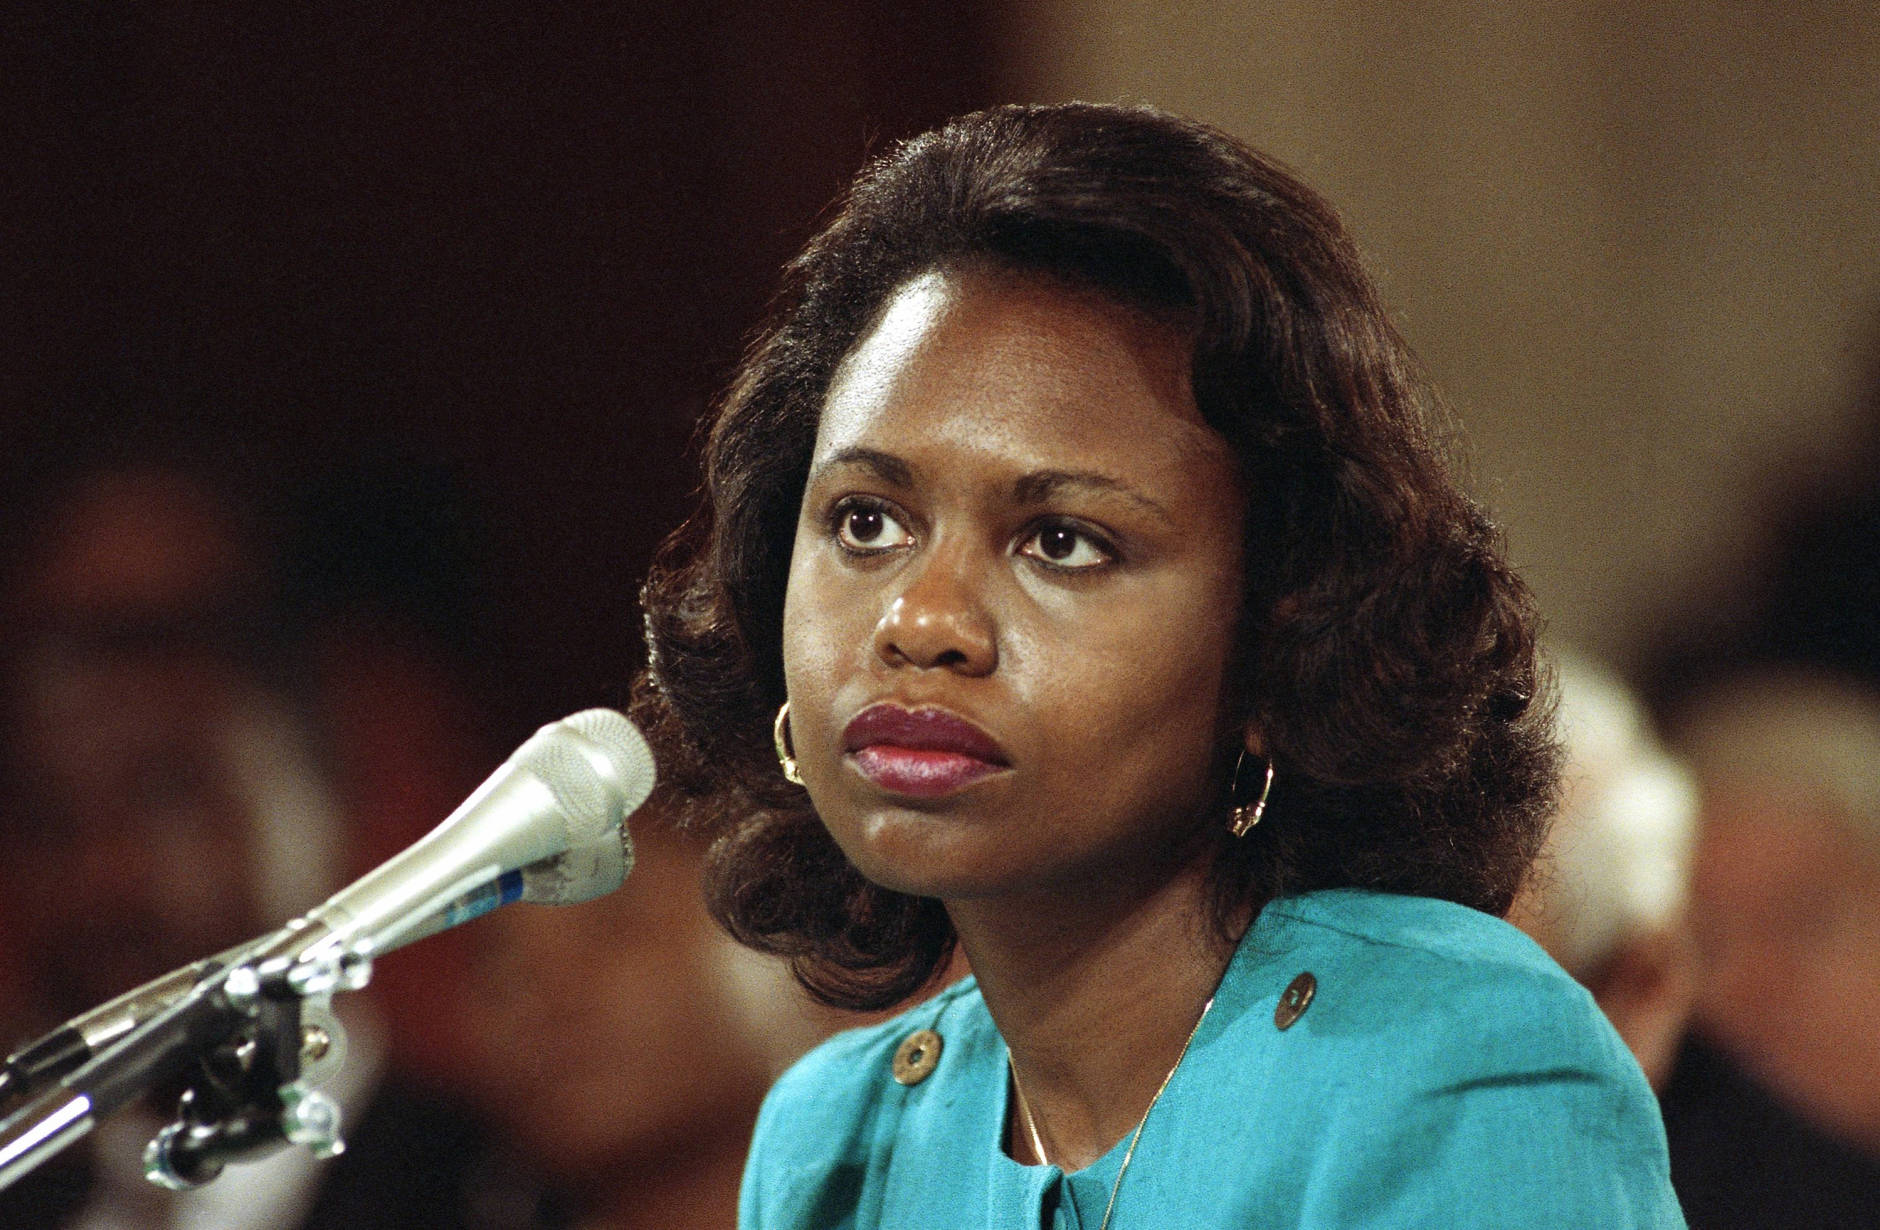 Head and shoulder shots of Anita Hill, University of Oklahoma Law Professor, who testified, that she was sexually harassed by Clarence Thomas. 1991 photo. (AP Photo)